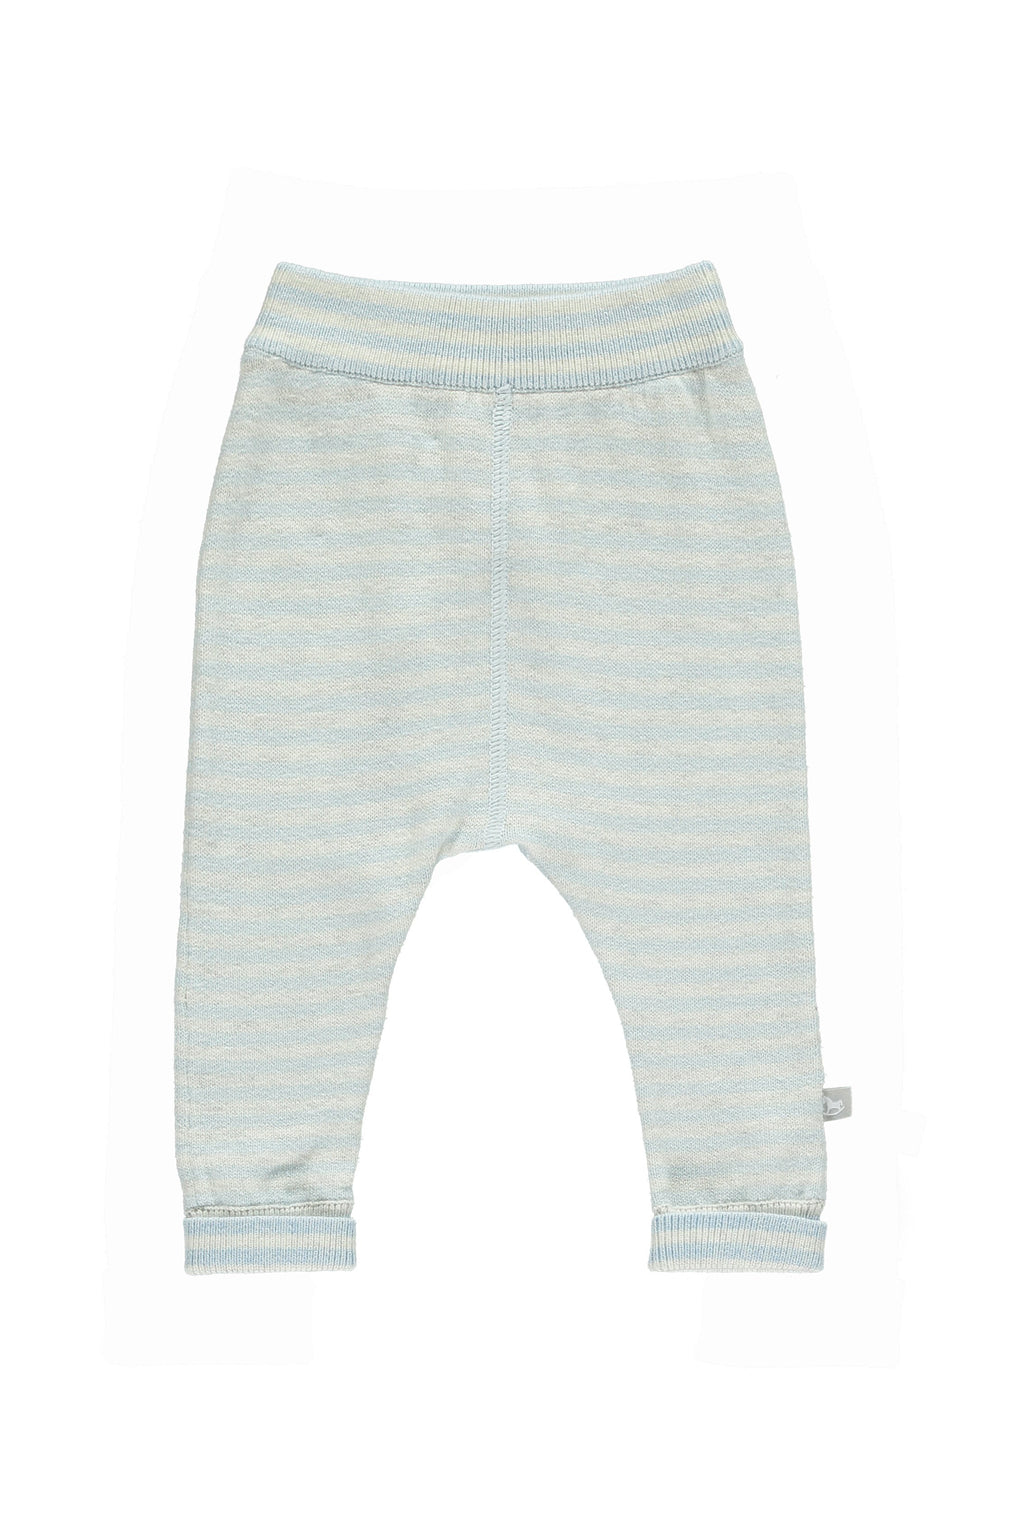 Blue Stripey Cotton Cashmere Mix Pant